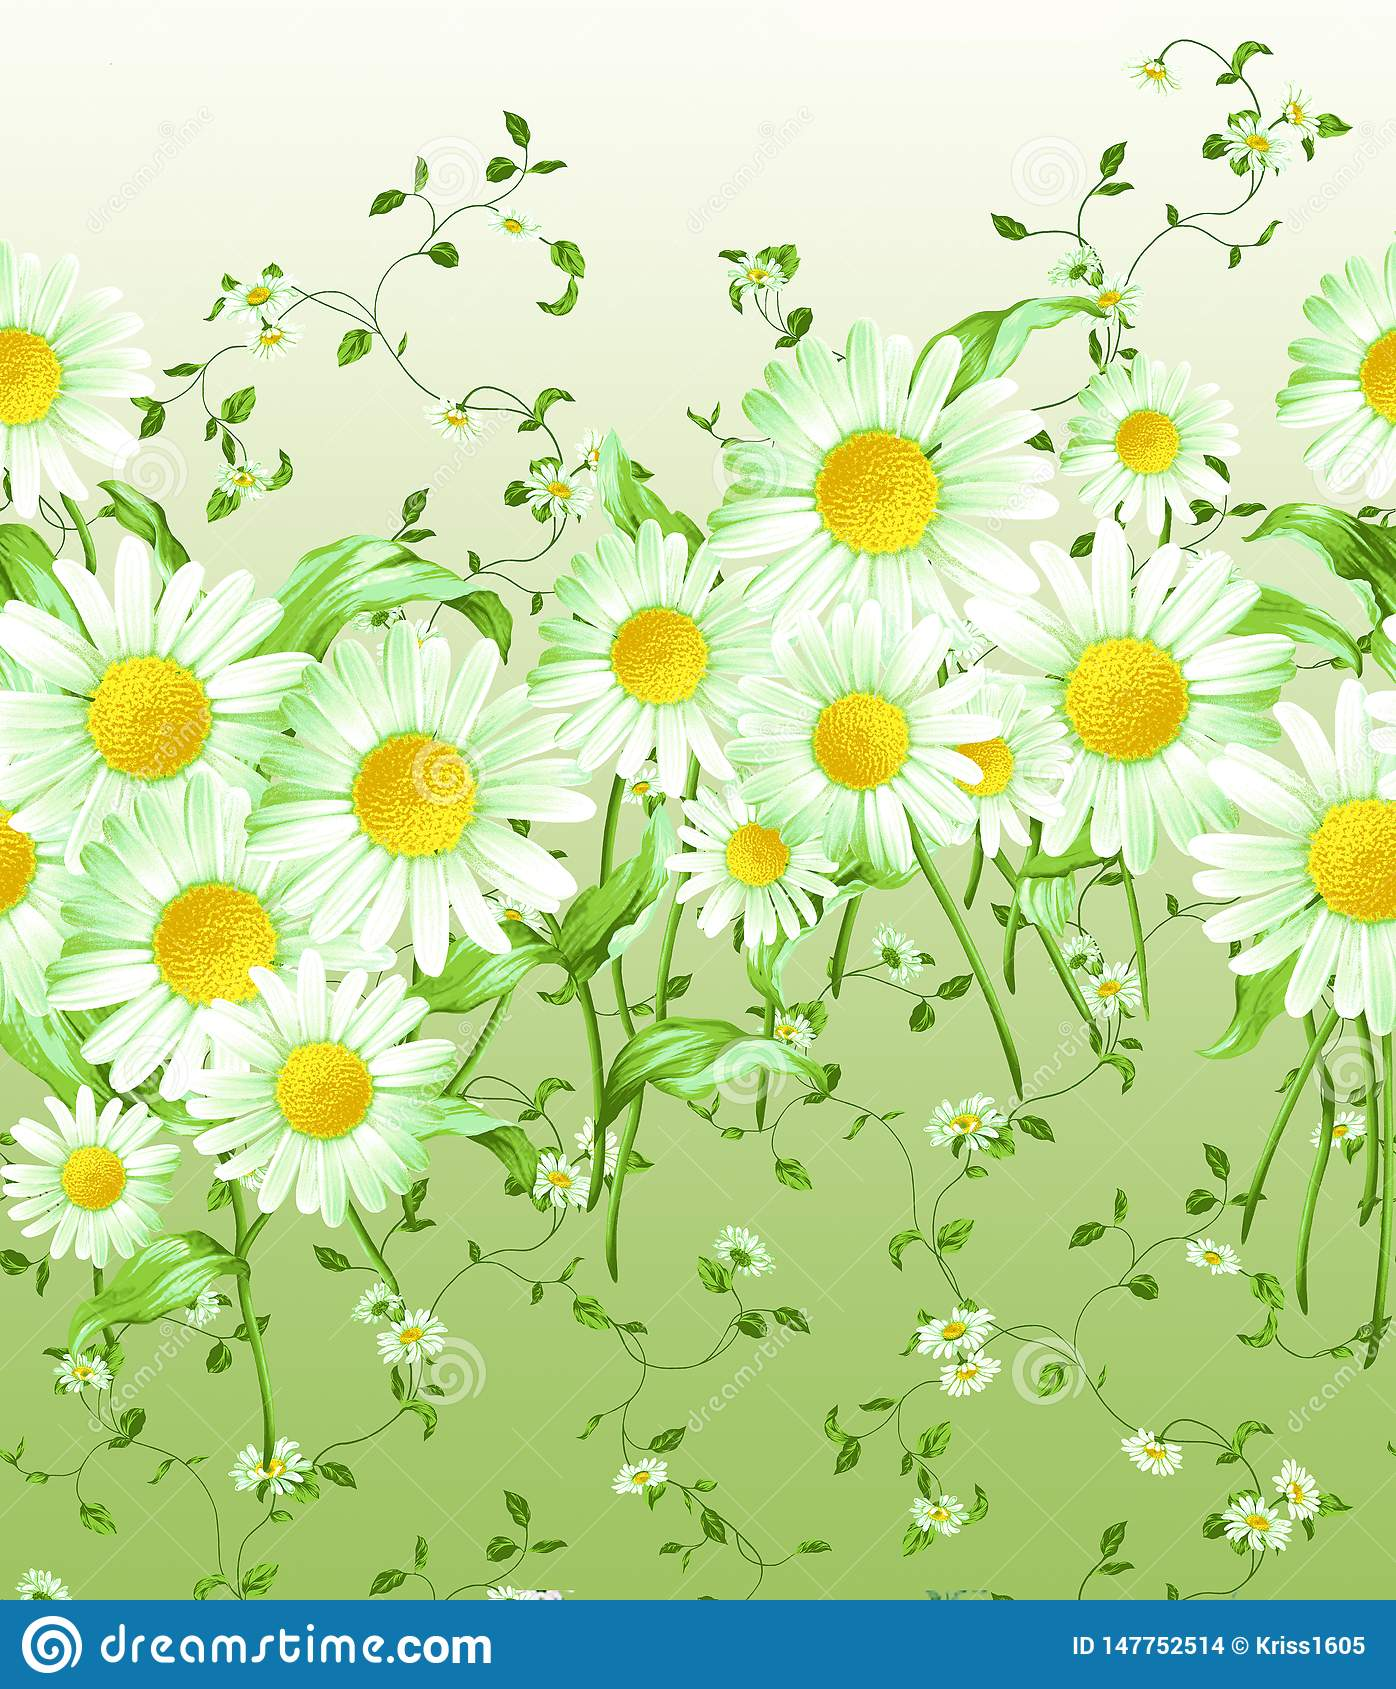 Horizontally repeating pattern of large and small daisies